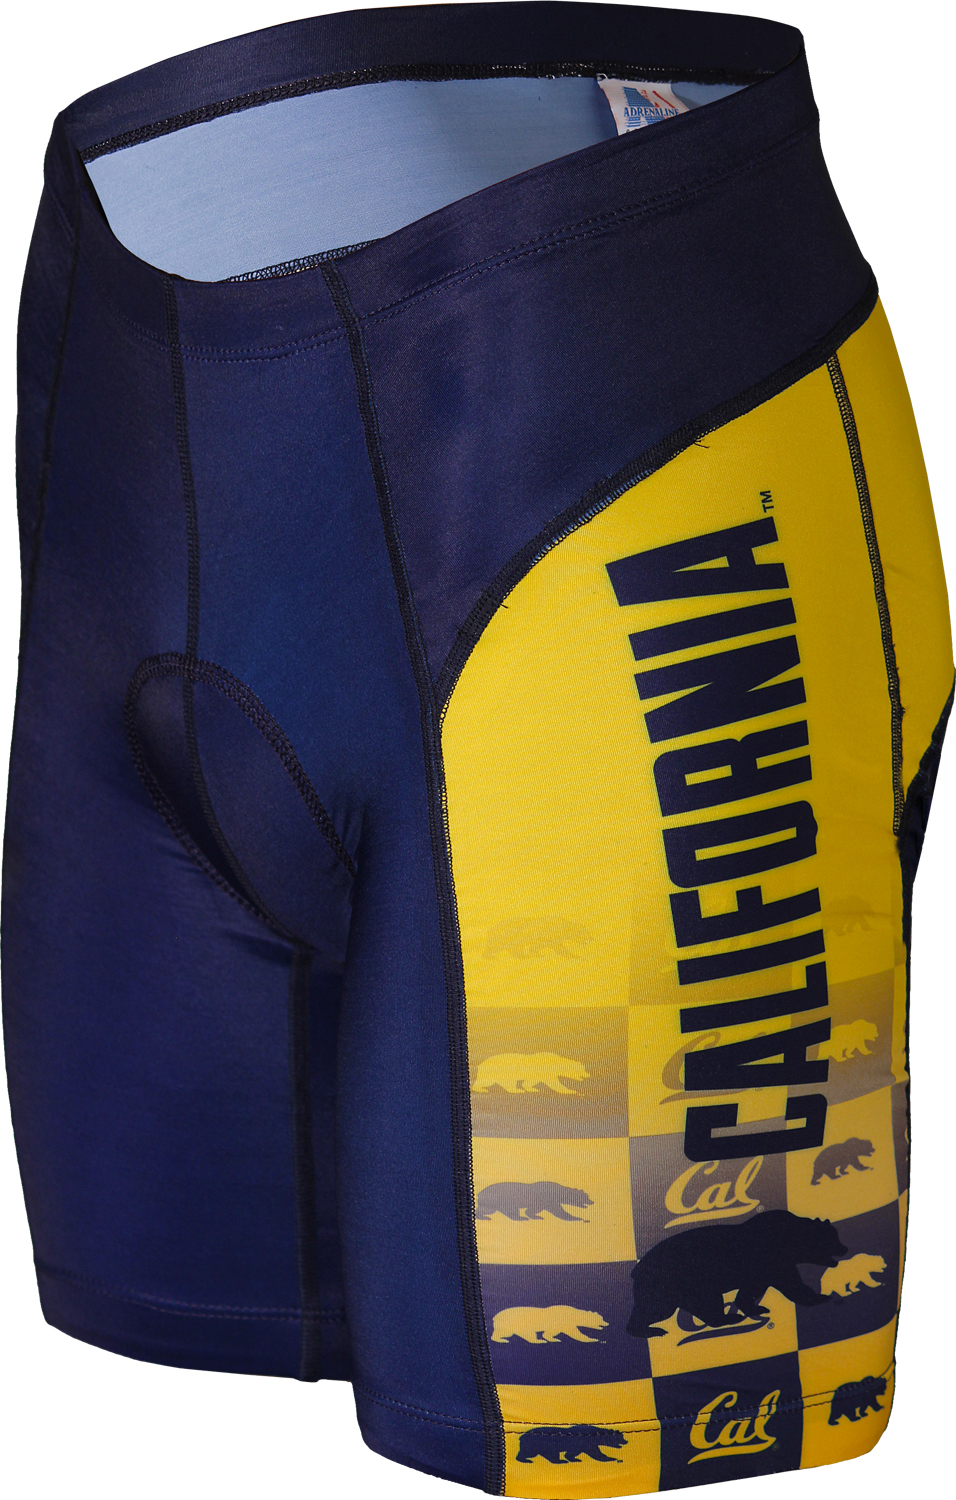 University of California Golden Bears Cycling Shorts